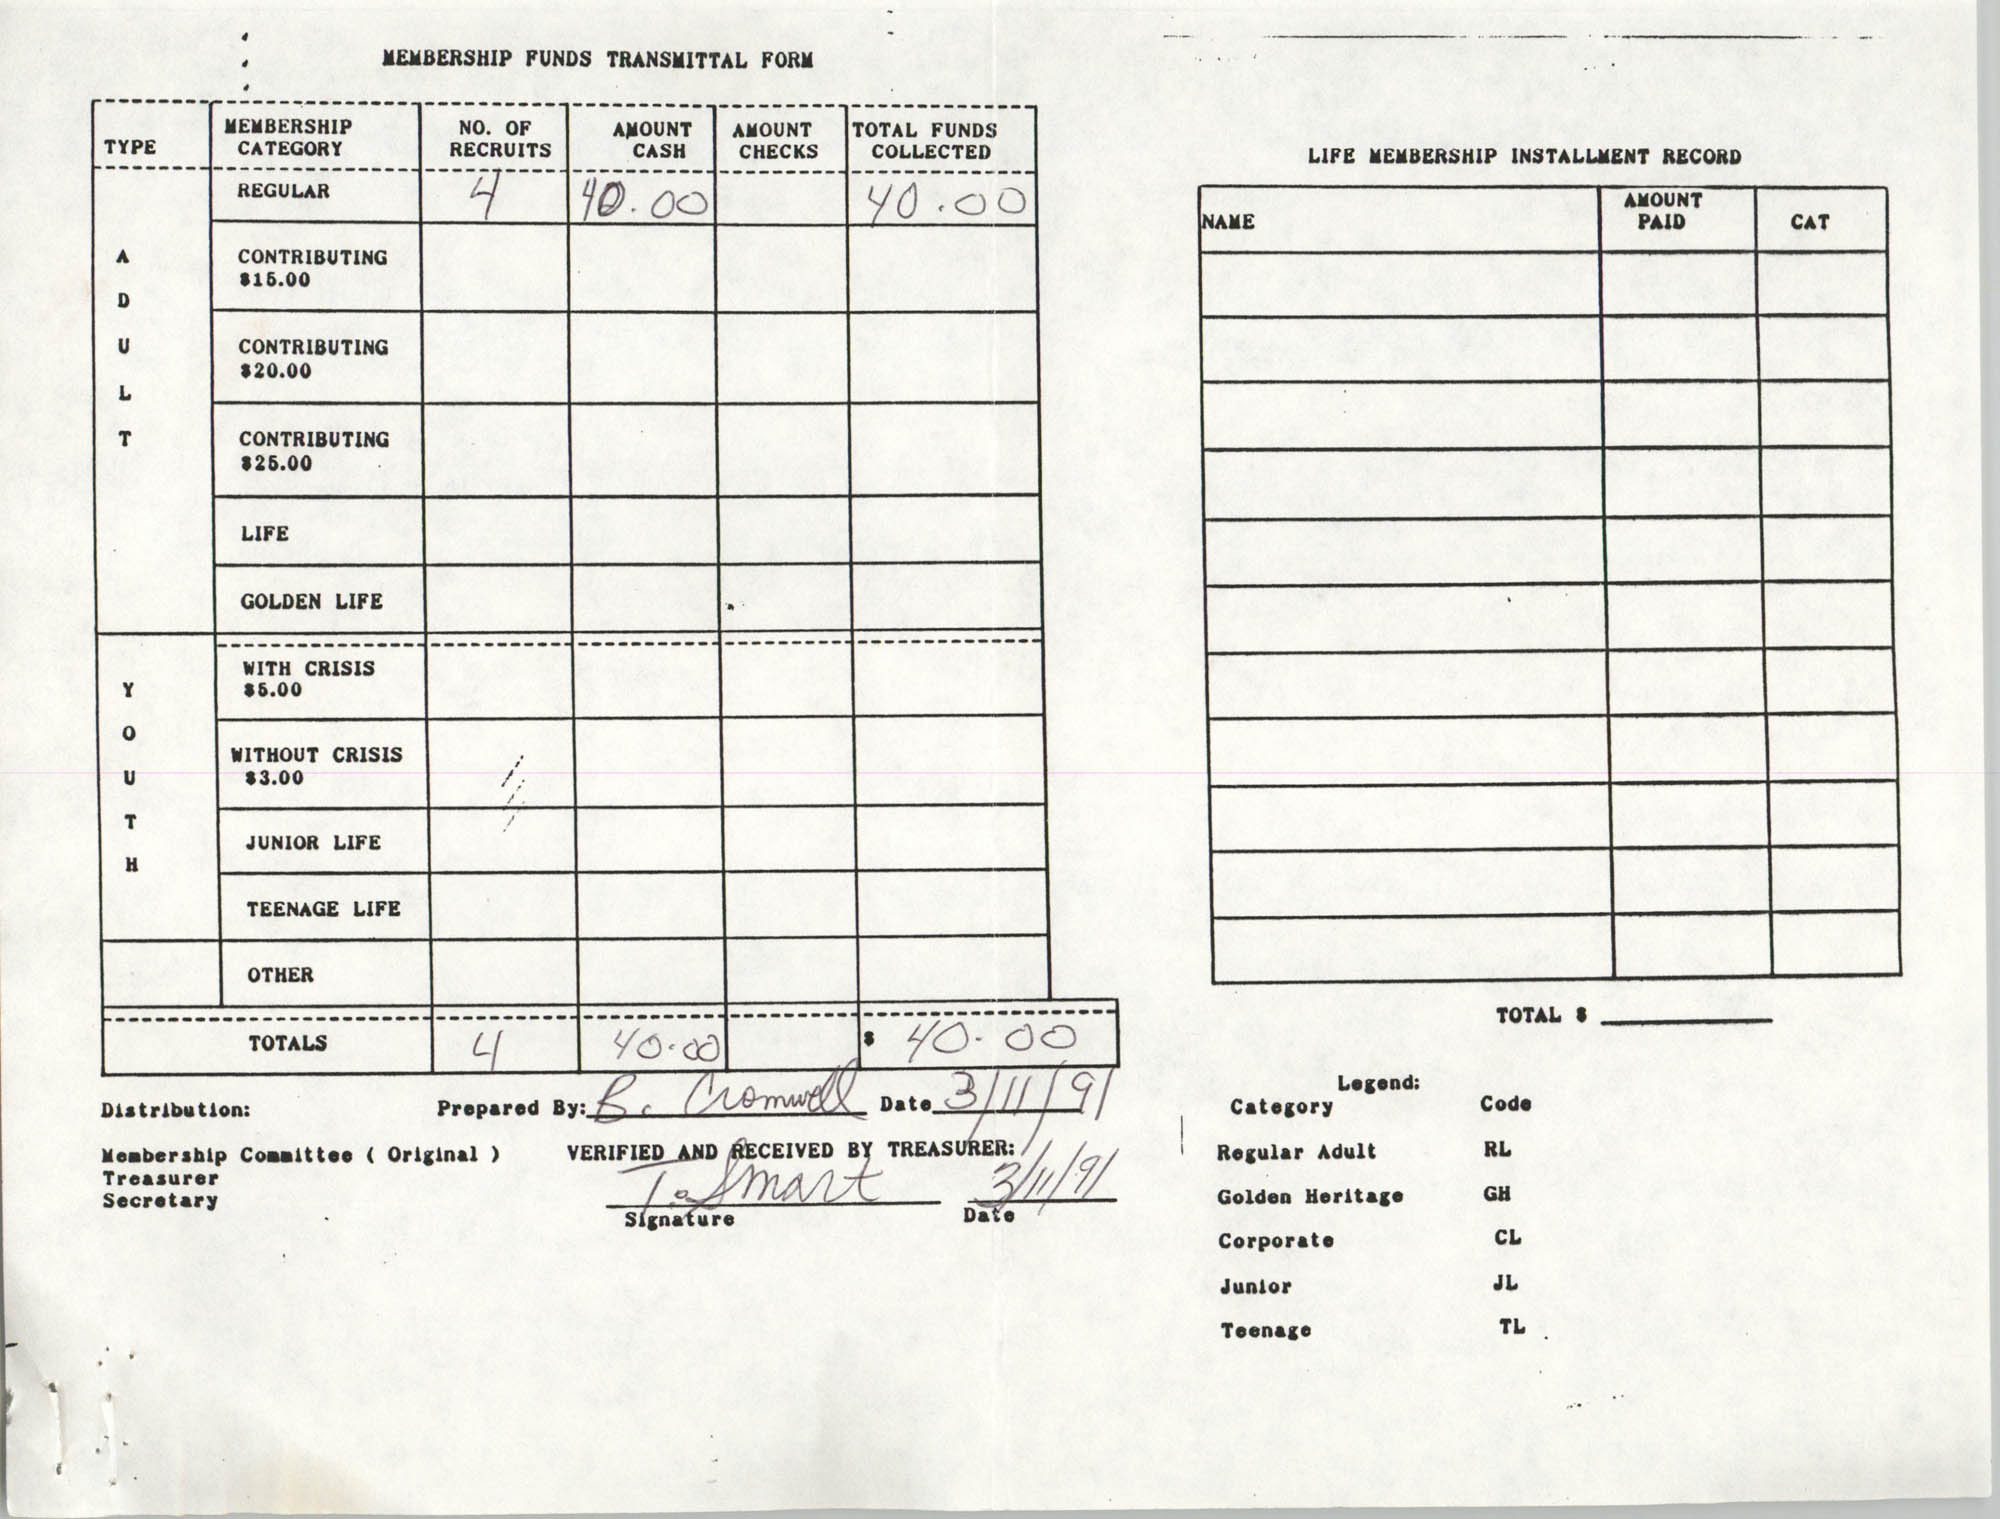 Charleston Branch of the NAACP Funds Transmittal Forms, March 1991, Page 6